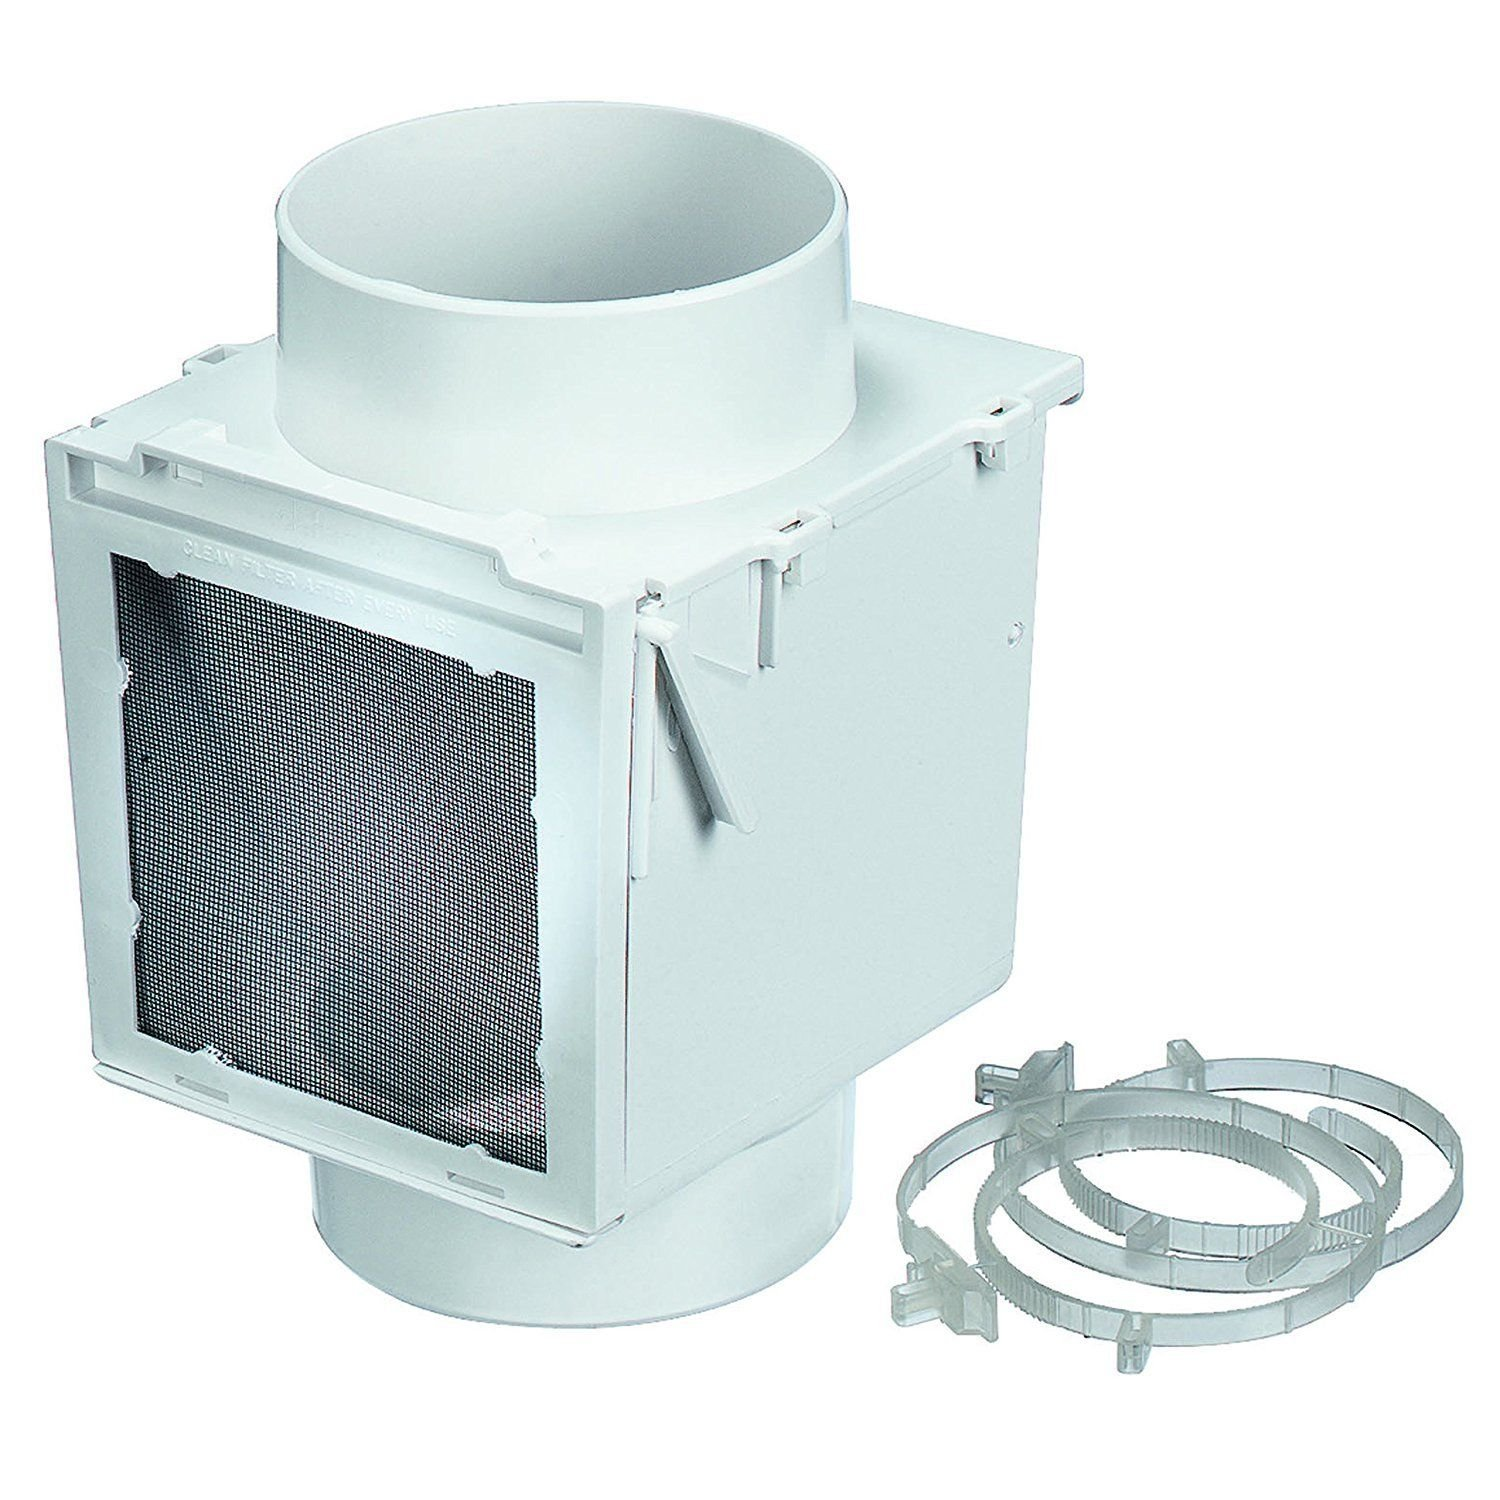 (RB)CHK100ZW Dryer Vent Heat Keeper Saver Winter and Summer Positions